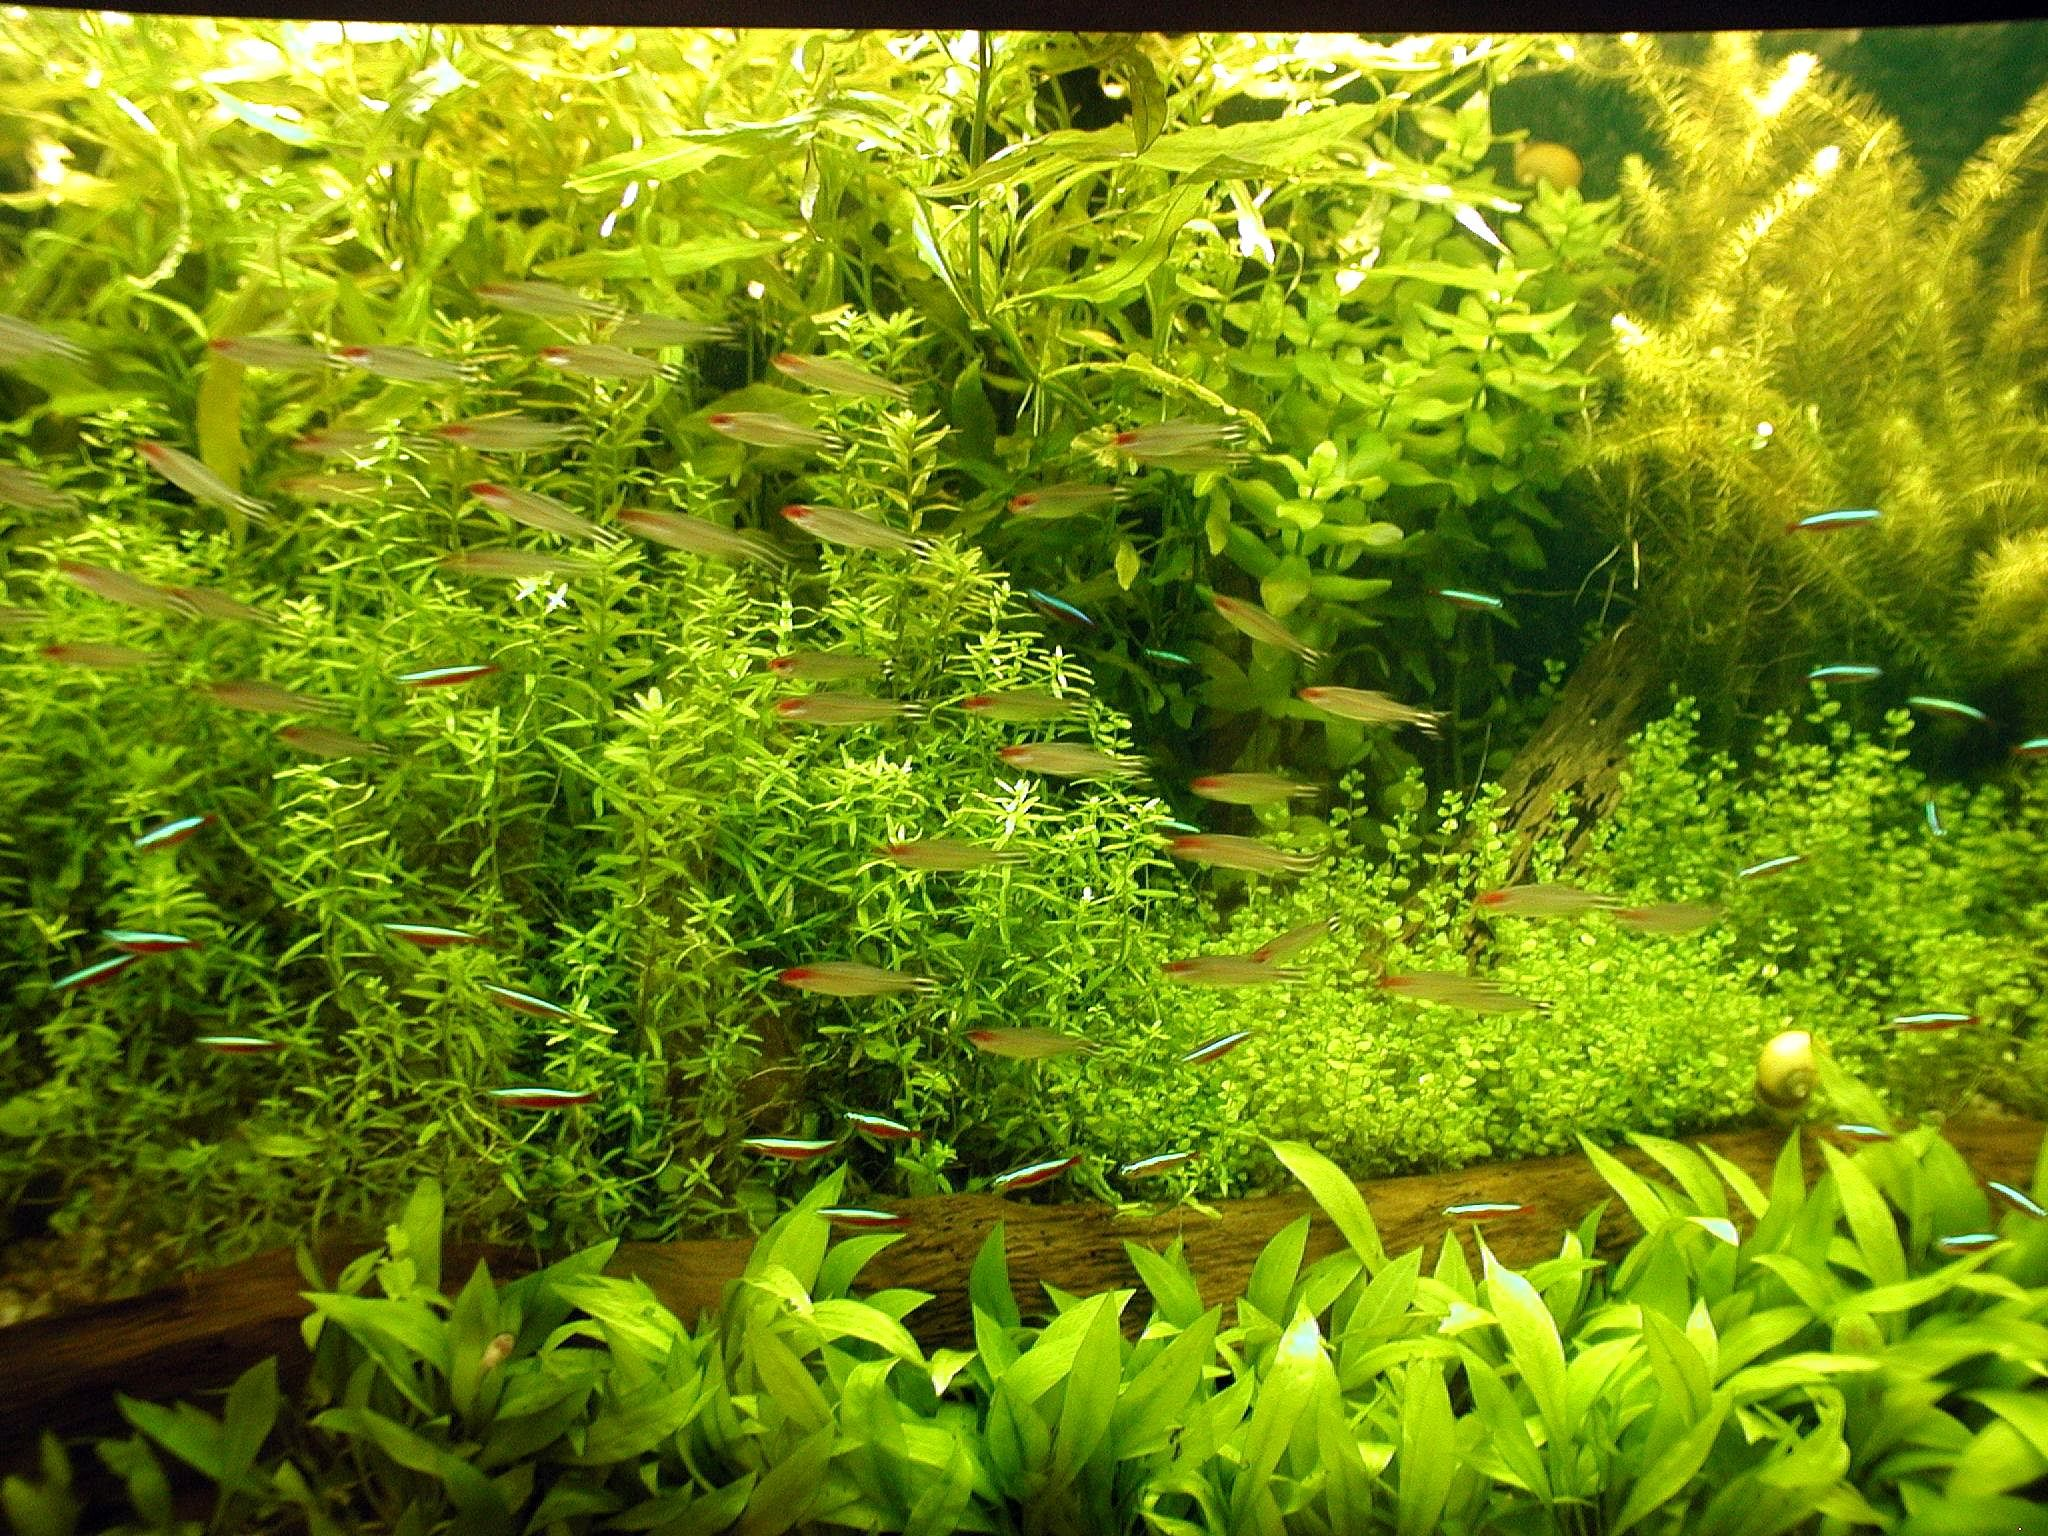 Aquarium fish tank plants -  File Aquarium Fish In Green Aqua Plants Jpg Wikimedia Commons Fish Tank